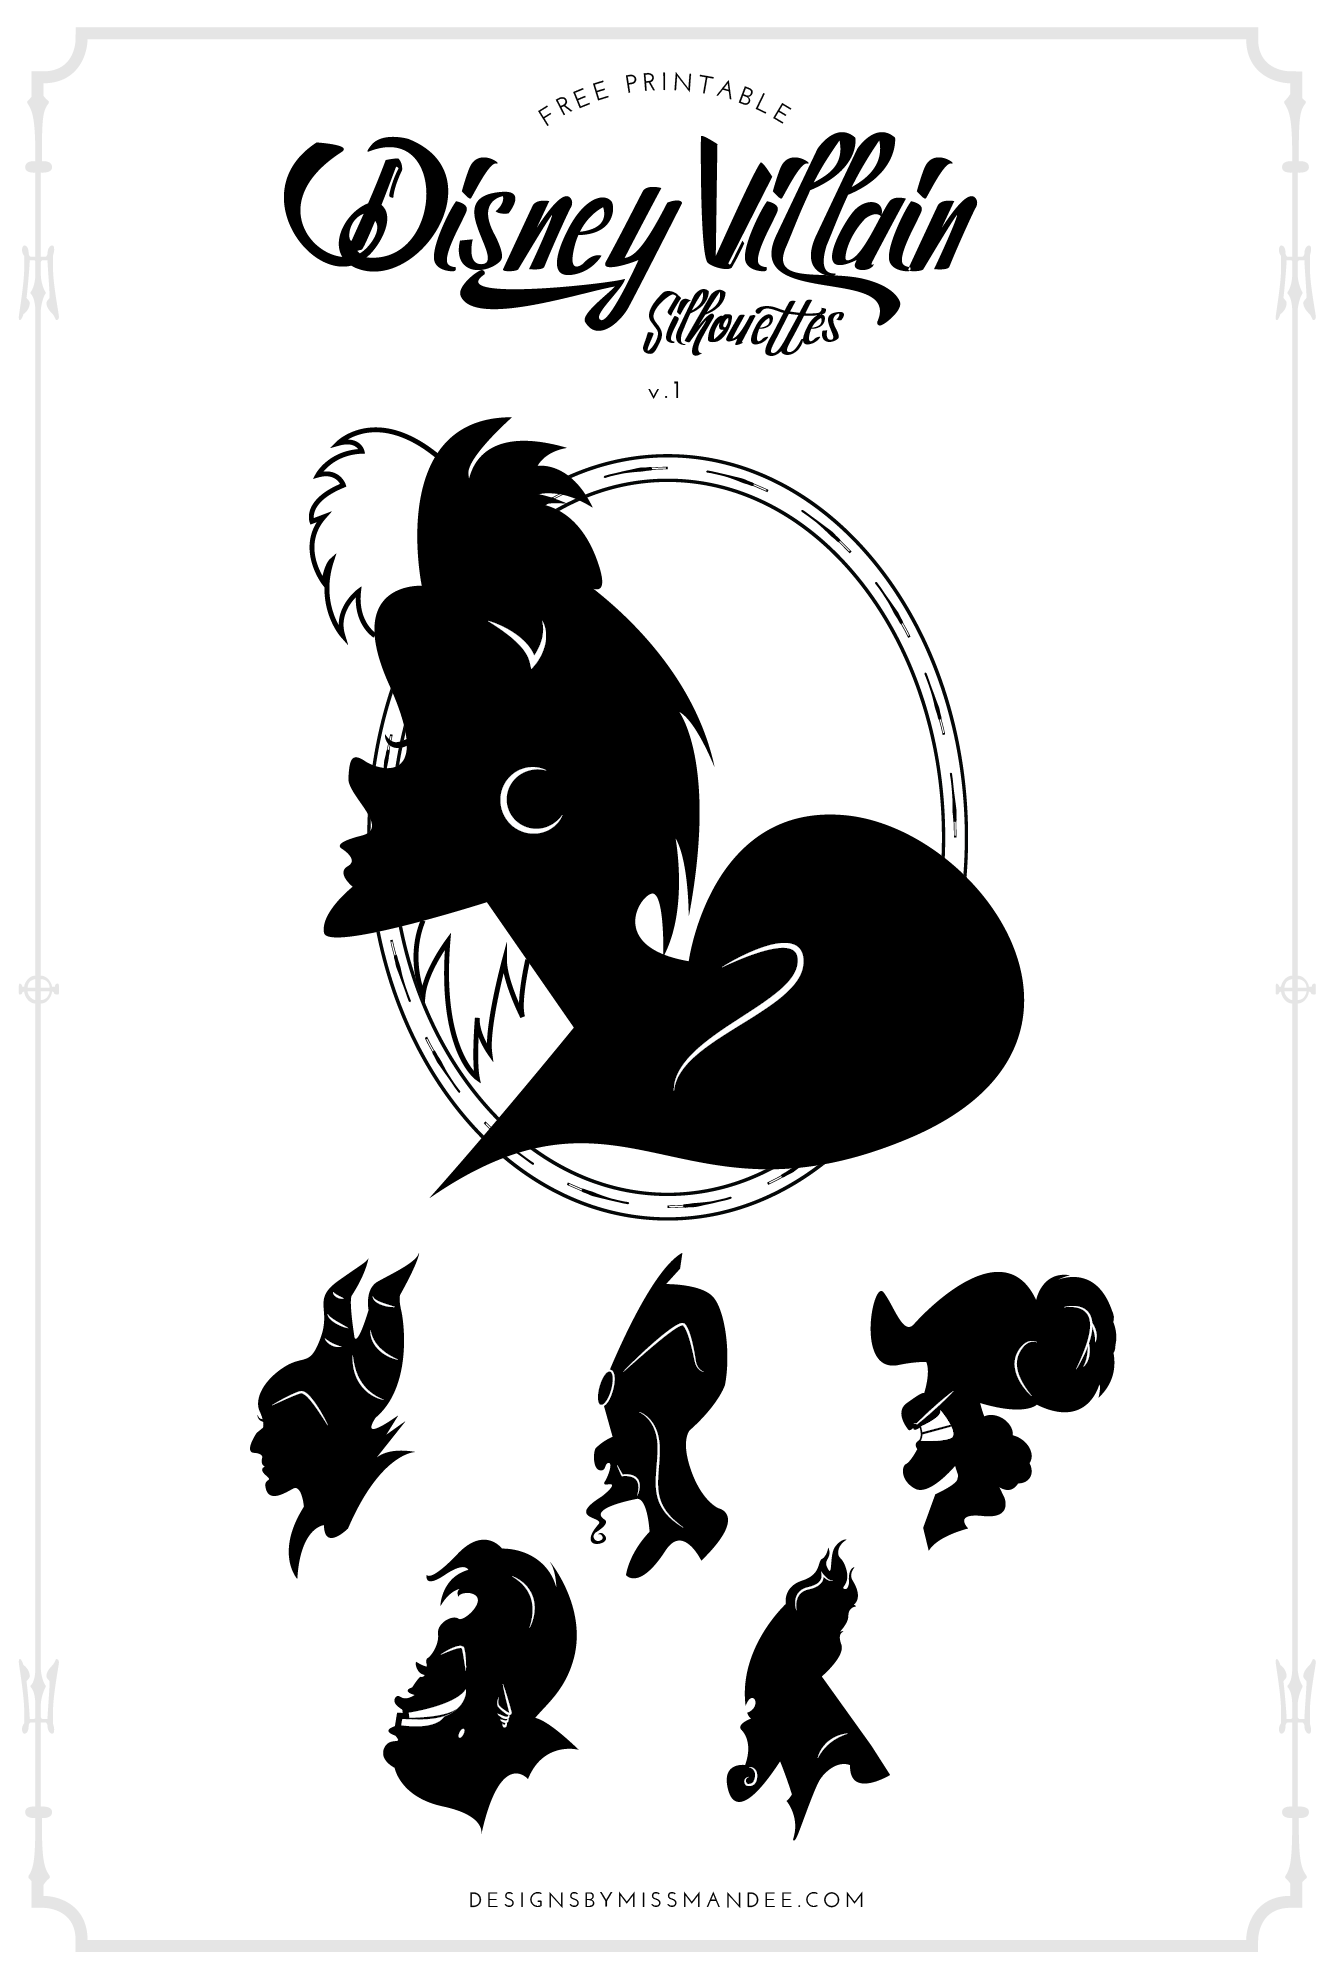 disney villain silhouettes v 1 designs by miss mandee Captain Hook Clip Art jafar clipart